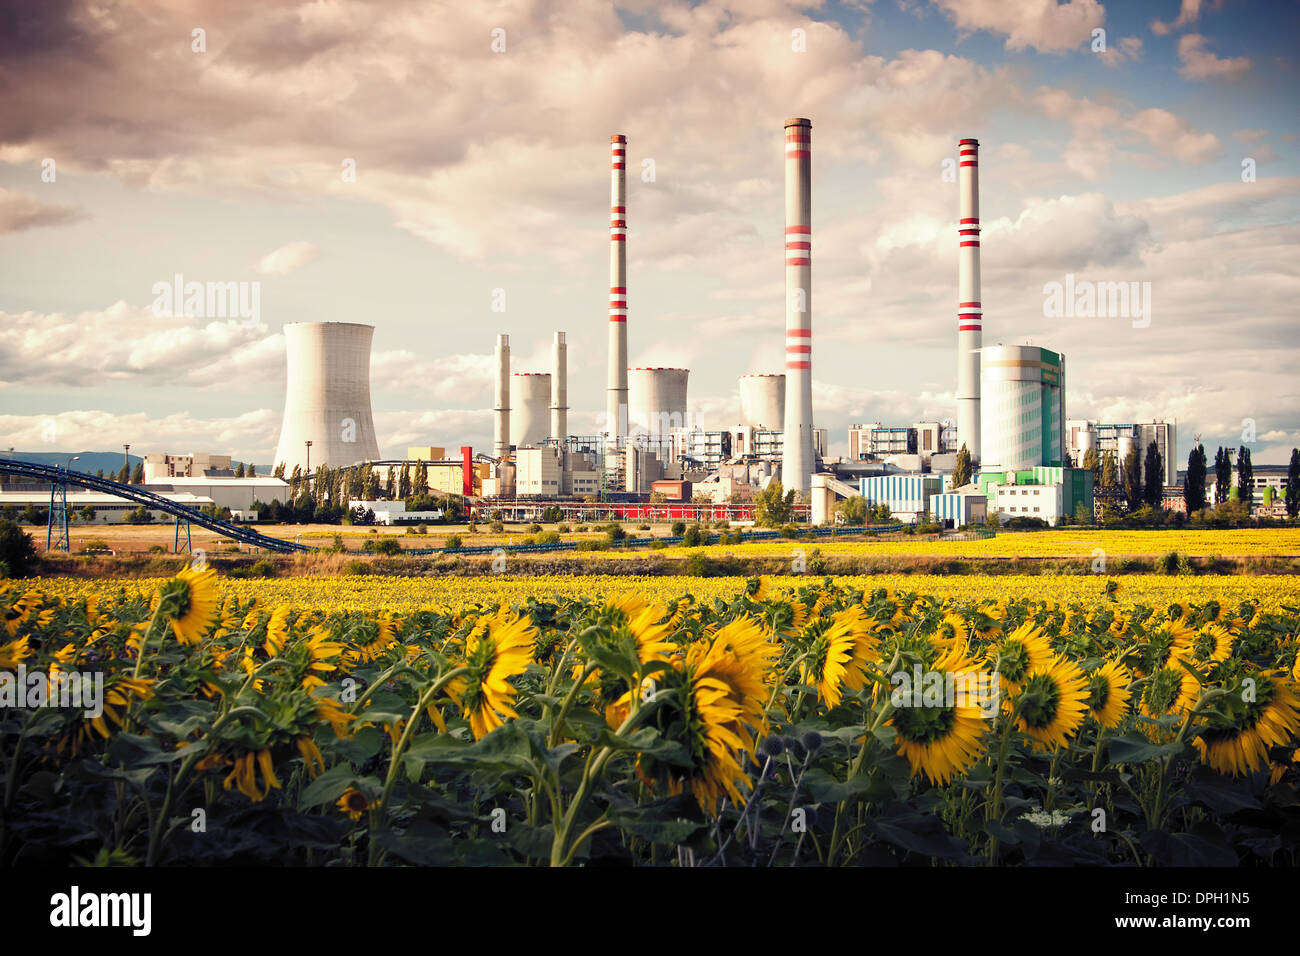 the power station Pocerada with sunflower field - Stock Image